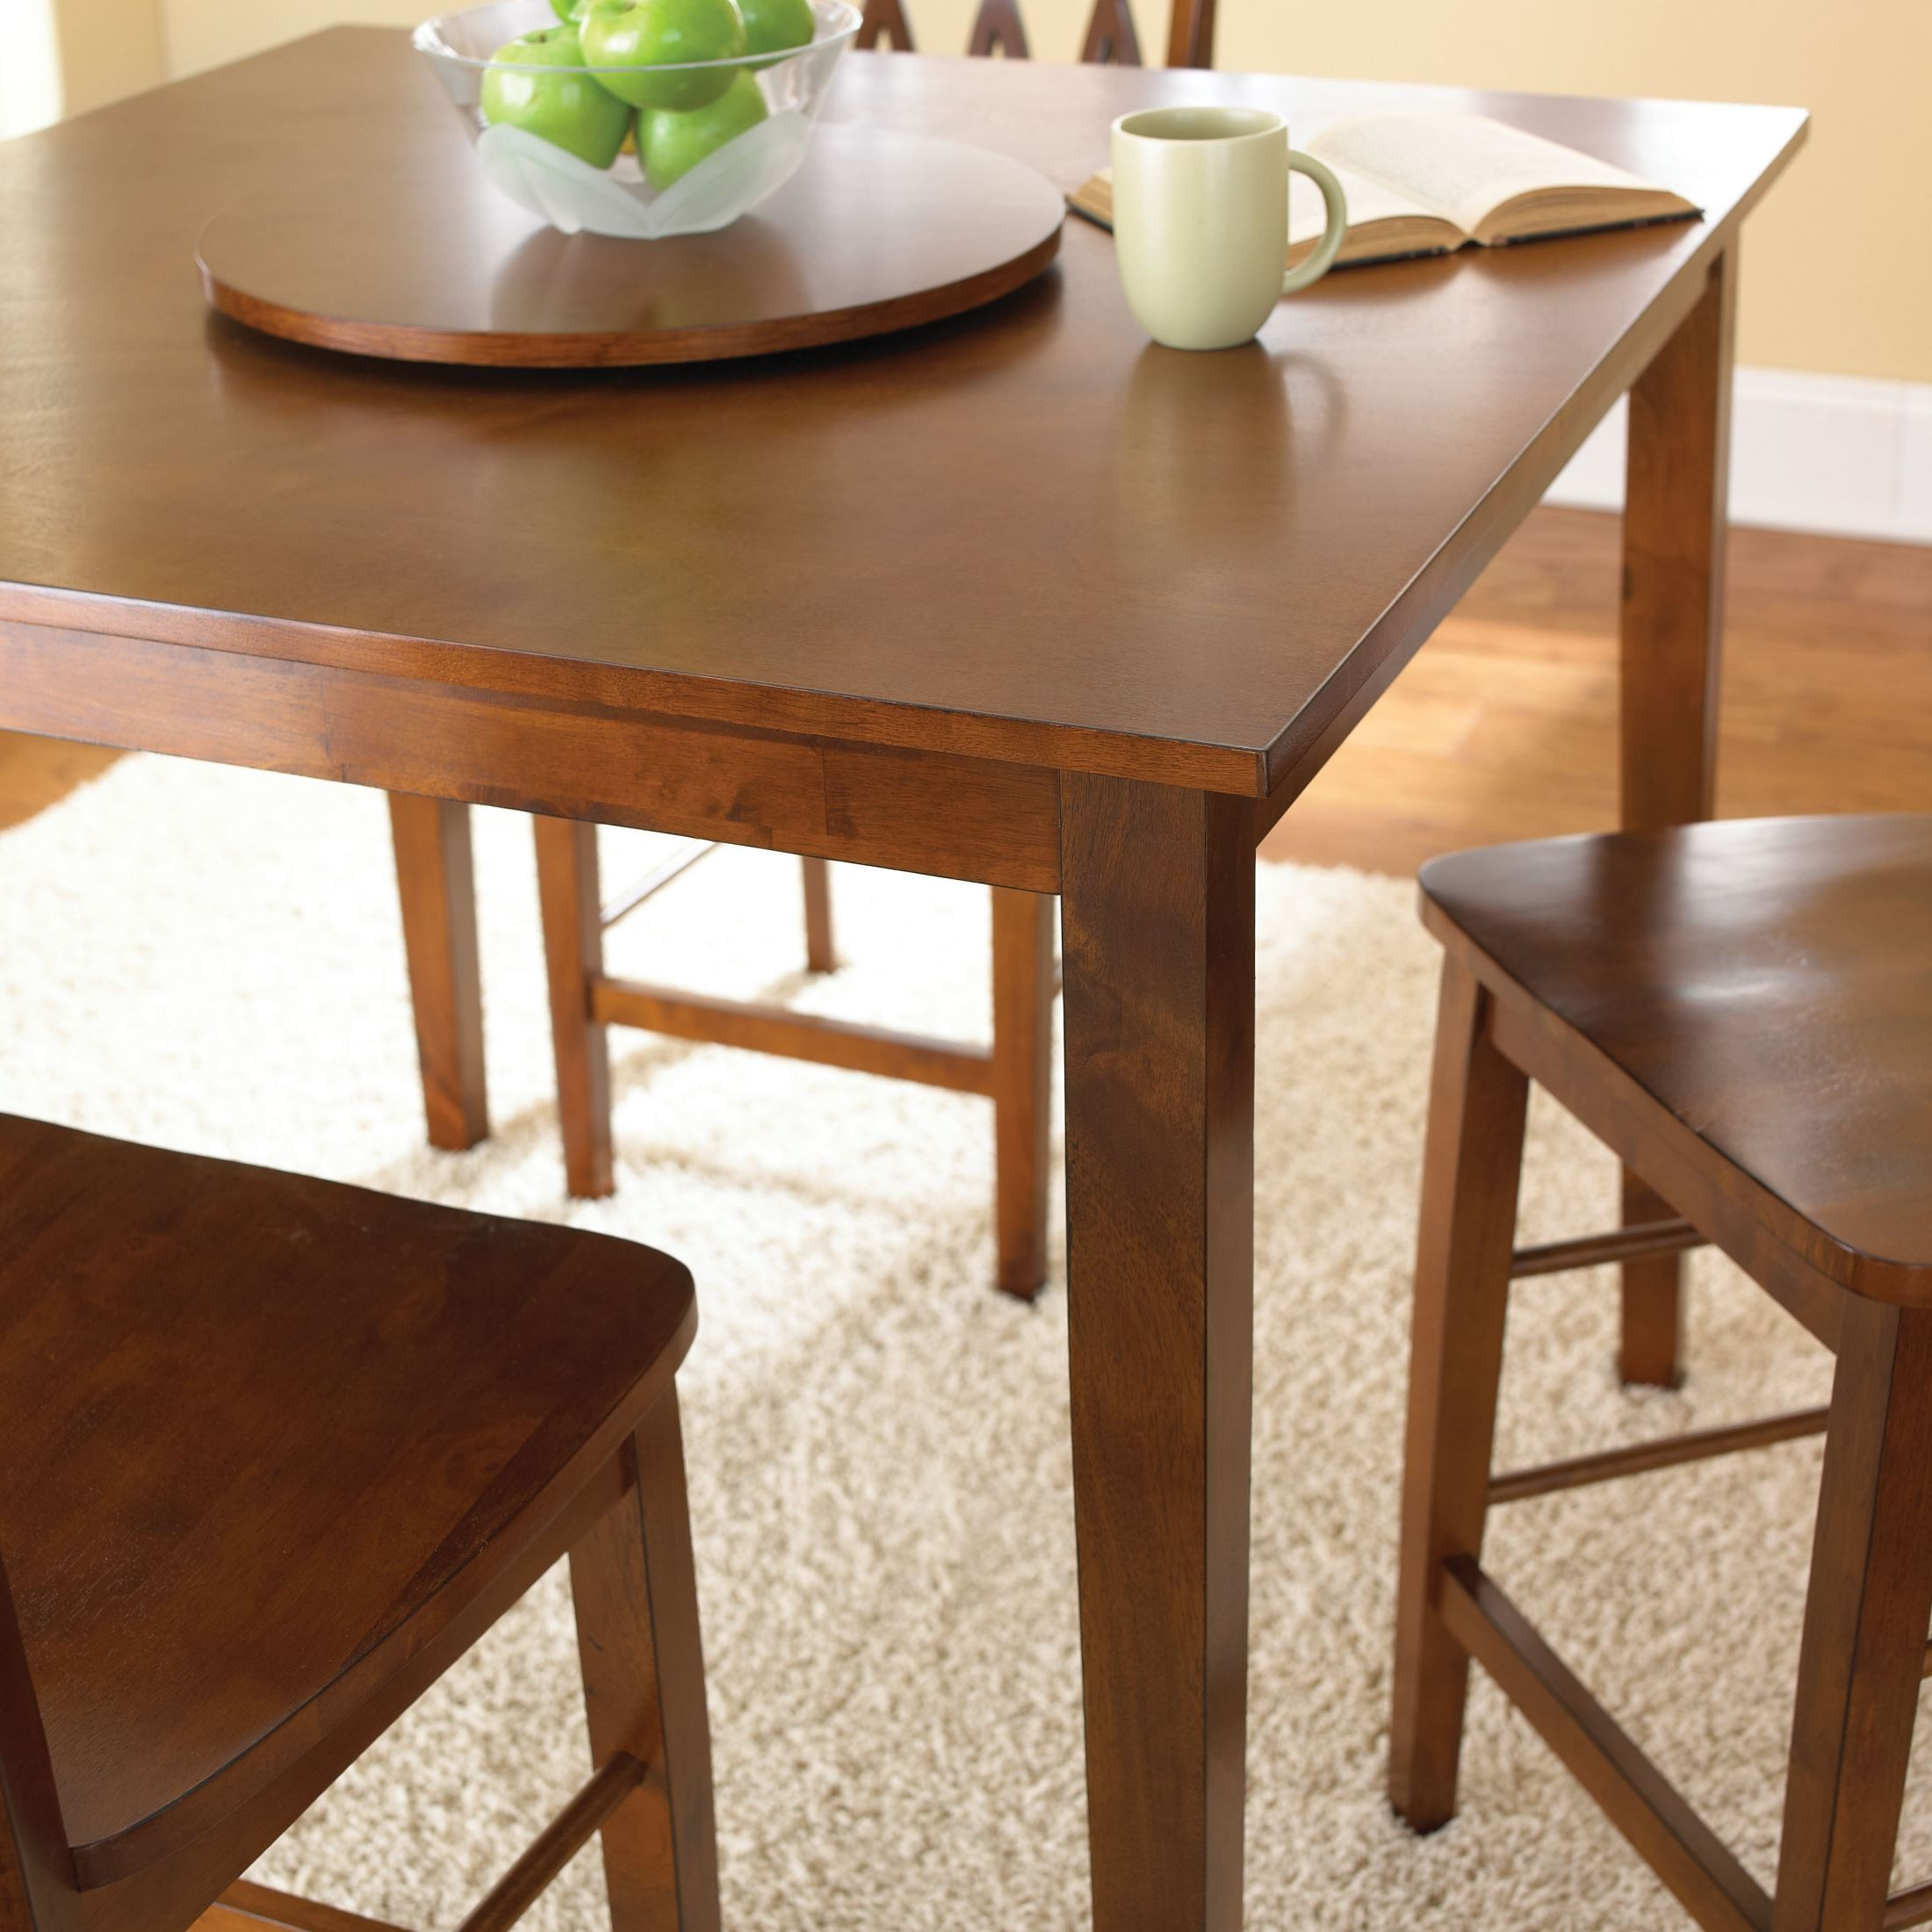 Kitchen Furniture Richmond: Richmond Fruitwood 5 Piece Counter Height Dining Set From